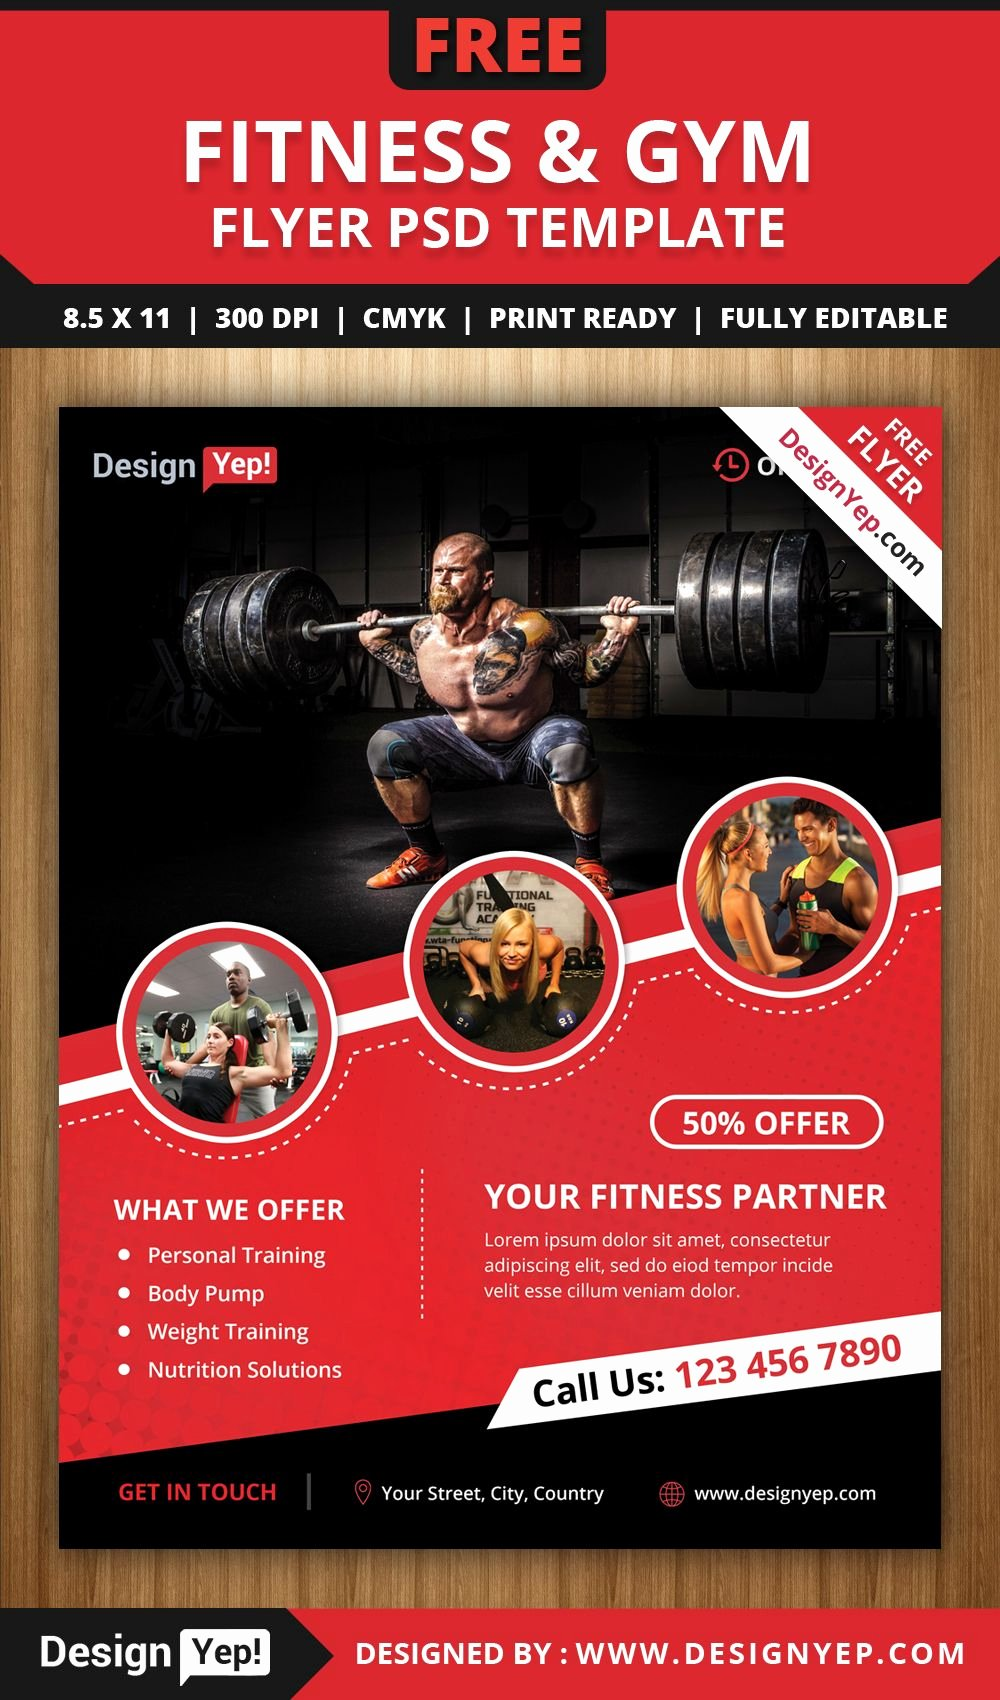 Free Fitness & Gym Flyer Psd Template